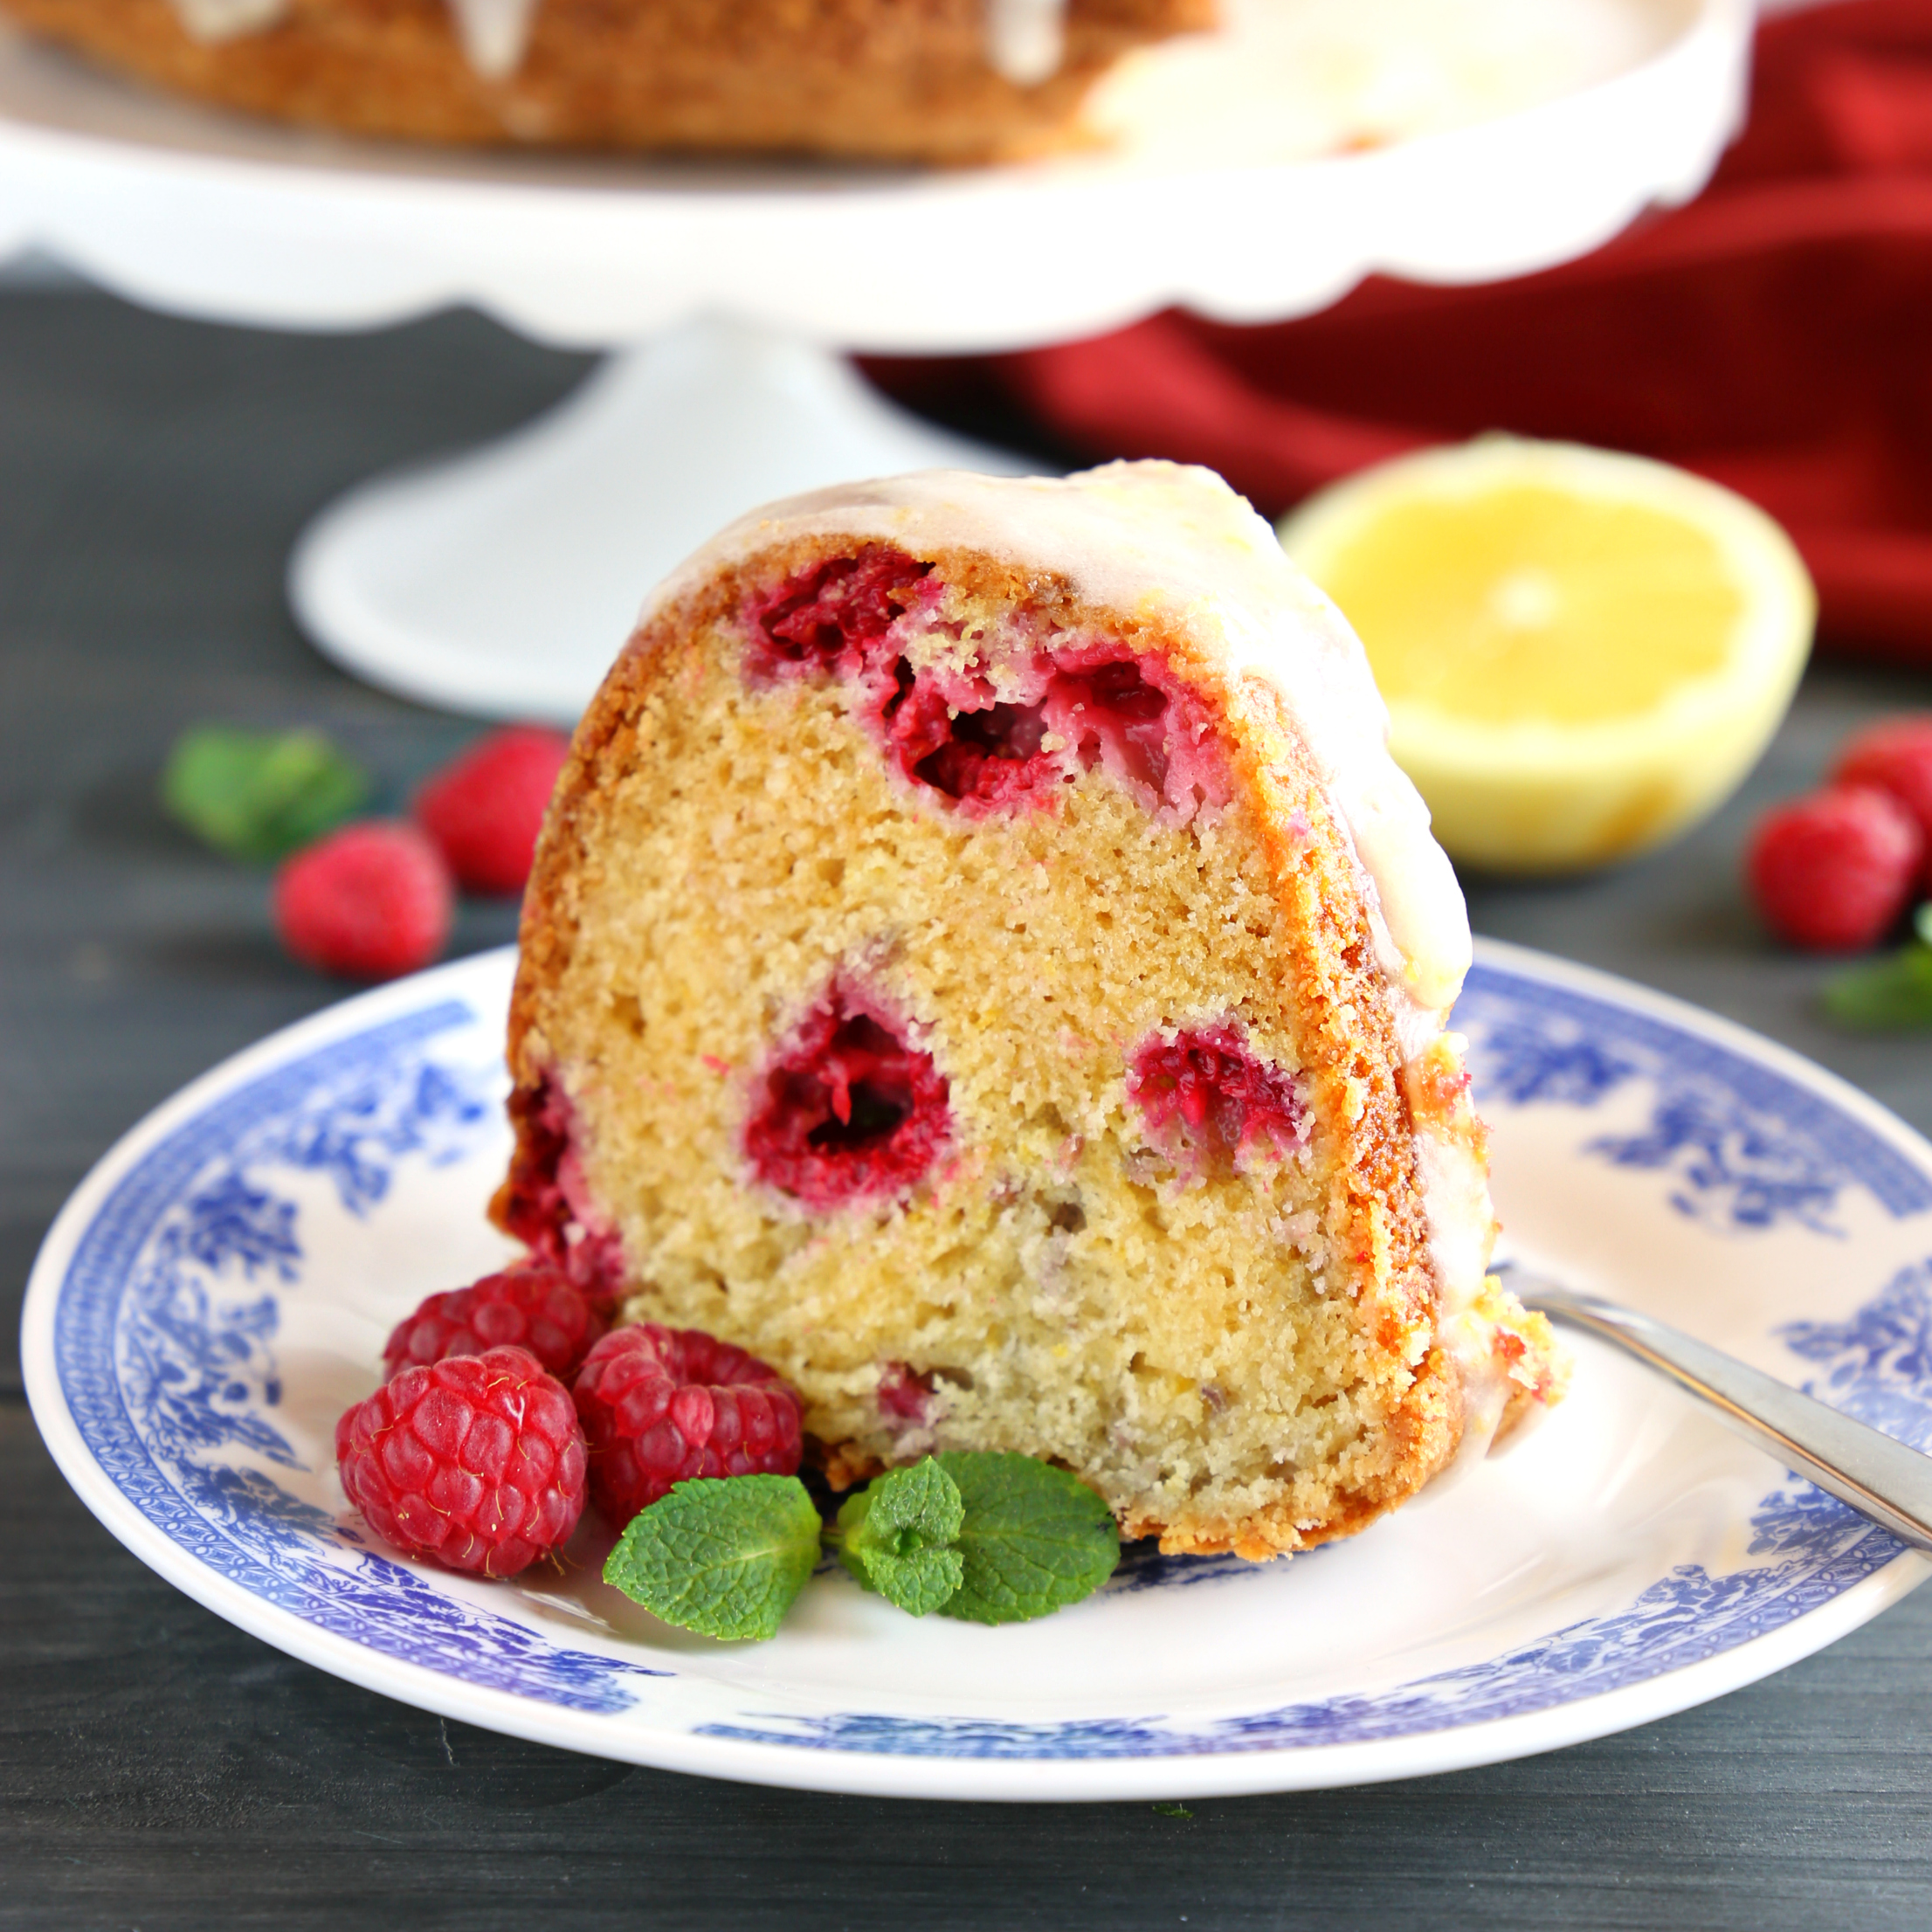 Lemon Raspberry Glazed Bundt Cake